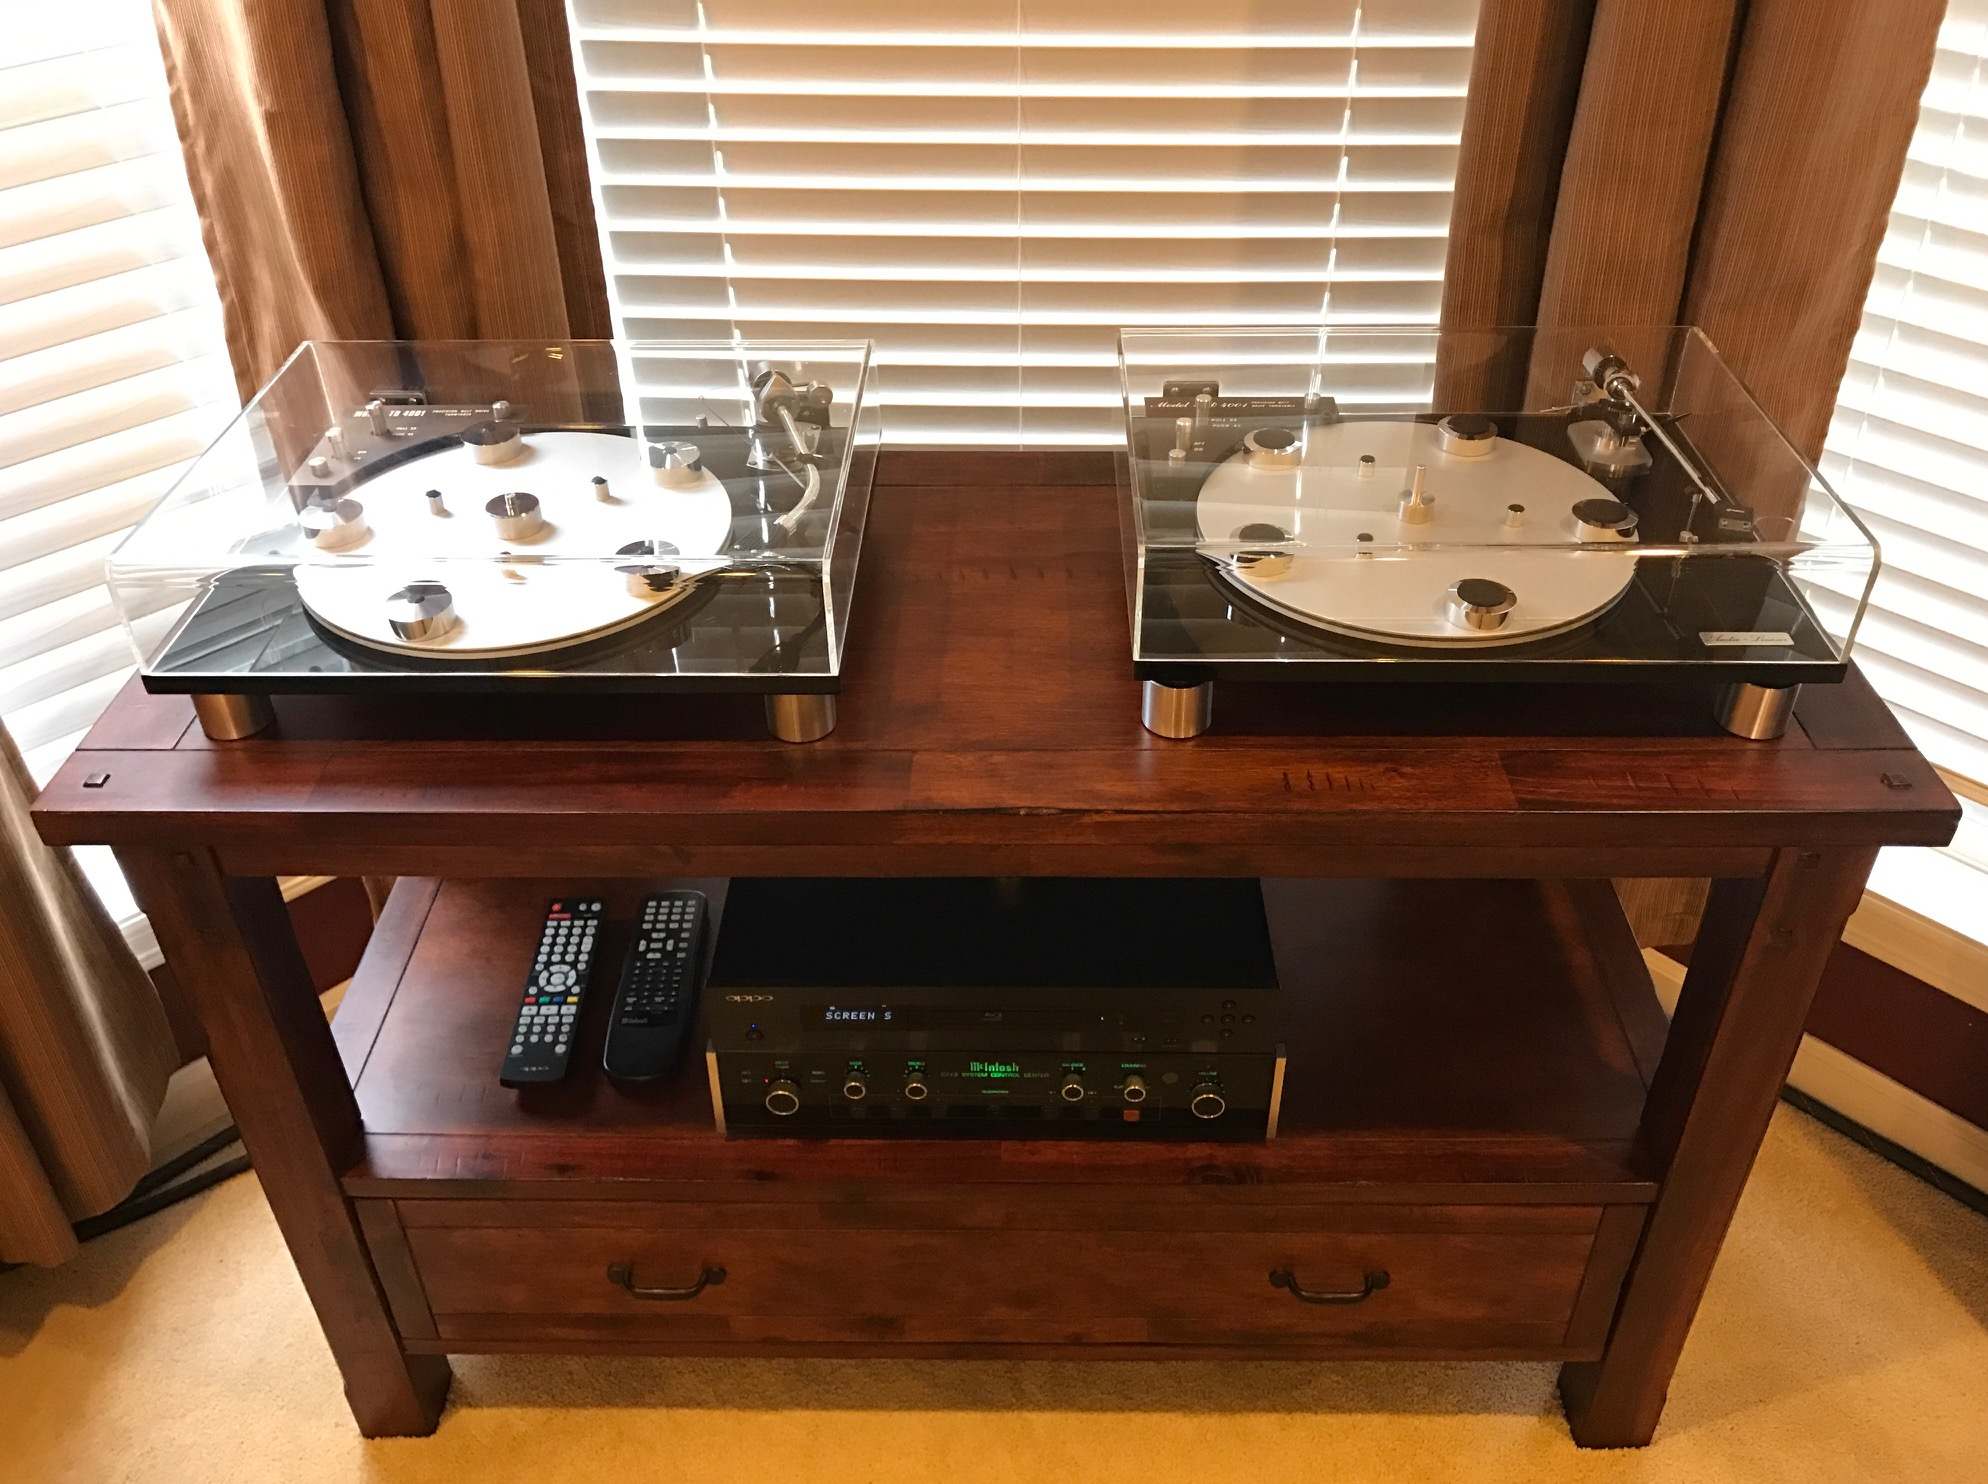 "Troy J System : Left Audio Linear turntable: SME Type II Improved-R VDH MCD-501, Grado G2+. Right Audio Linear turntable: Grace 707 w/NOS DIN cable, 1/4"" glass platter, Grado Prestige Gold cartridge. Playing with: McIntosh 712, Oppo 103, McIntosh MC7200, Monster Signature HTPS 7000, Shunyata Antares (Bal) IC, MIT 3 Bi-wired, and Vandersteen 2CI speakers. Wow."